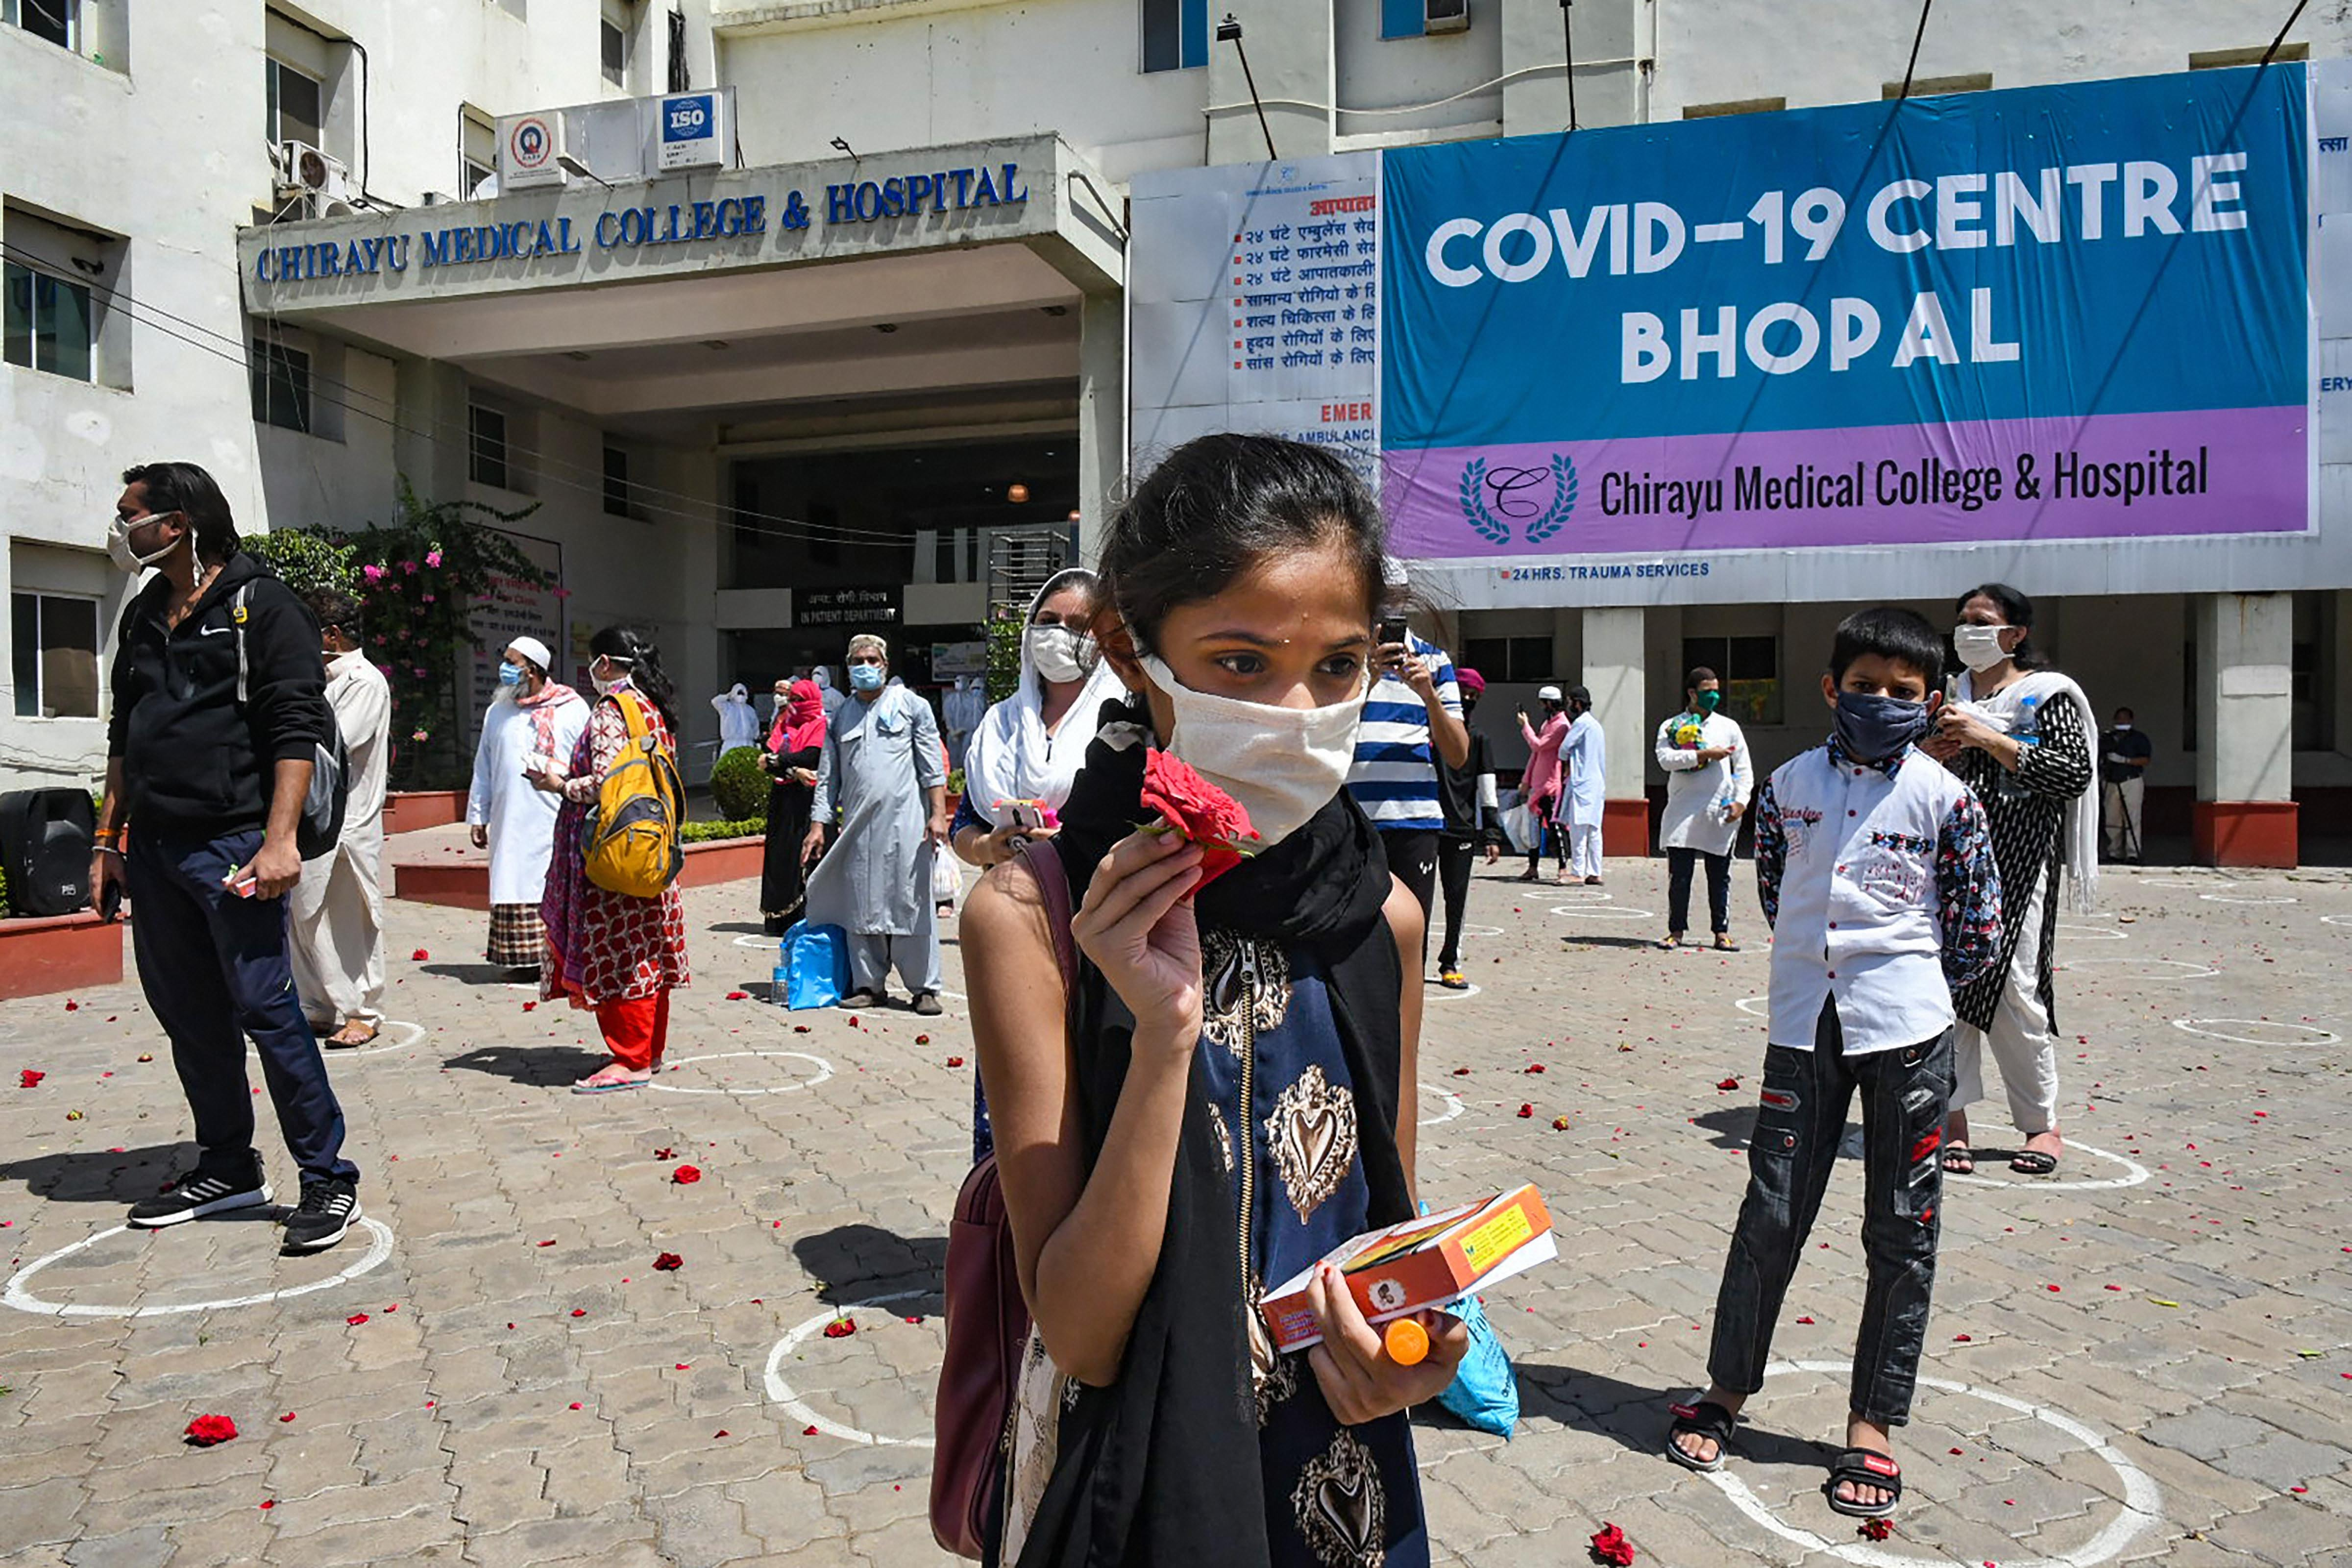 An Army bank welcomes people who recovered from Covid-19 while they are discharged from the Chirayu Hospital in Bhopal, Sunday, May 3, 2020.